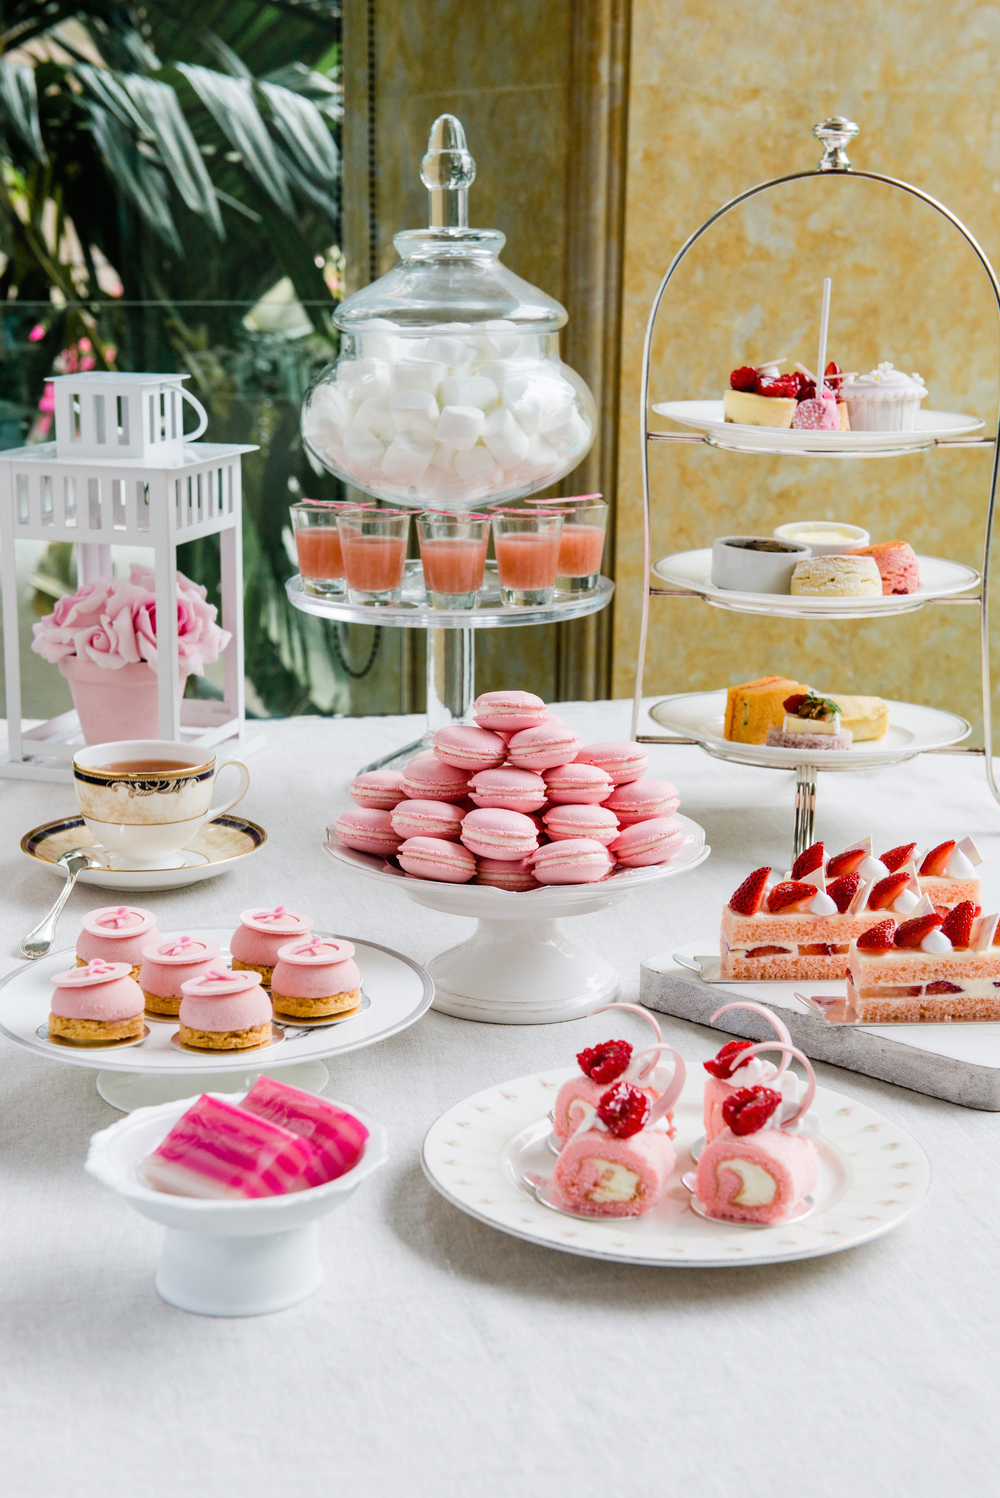 Pink High Tea Buffet at the Rose Veranda | Photo Credit: Shangri-La Hotel, Singapore